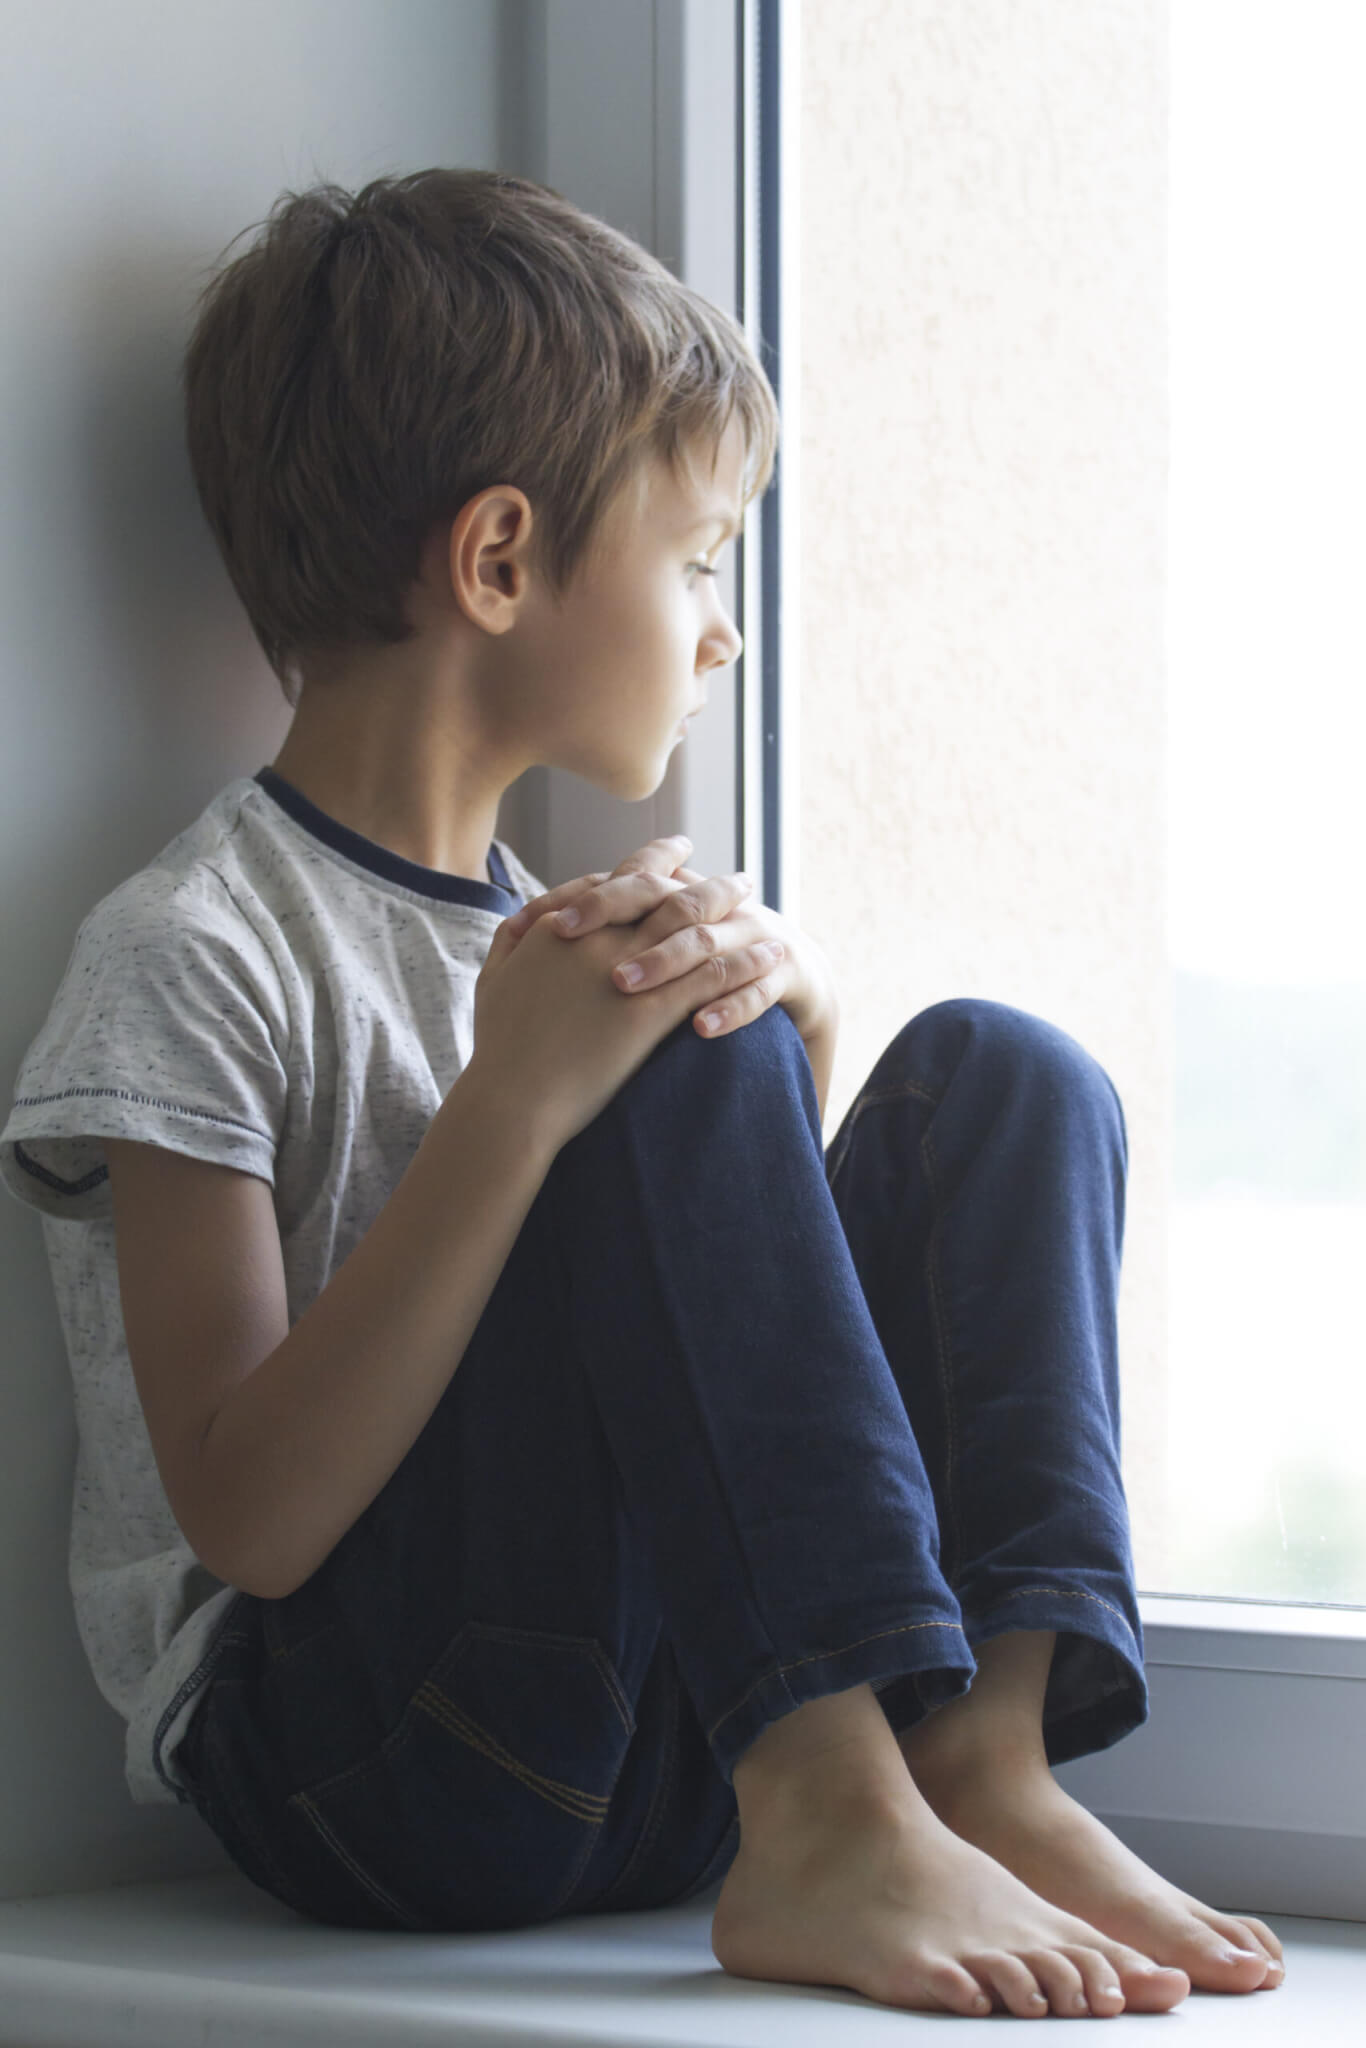 melancholy child looking out window